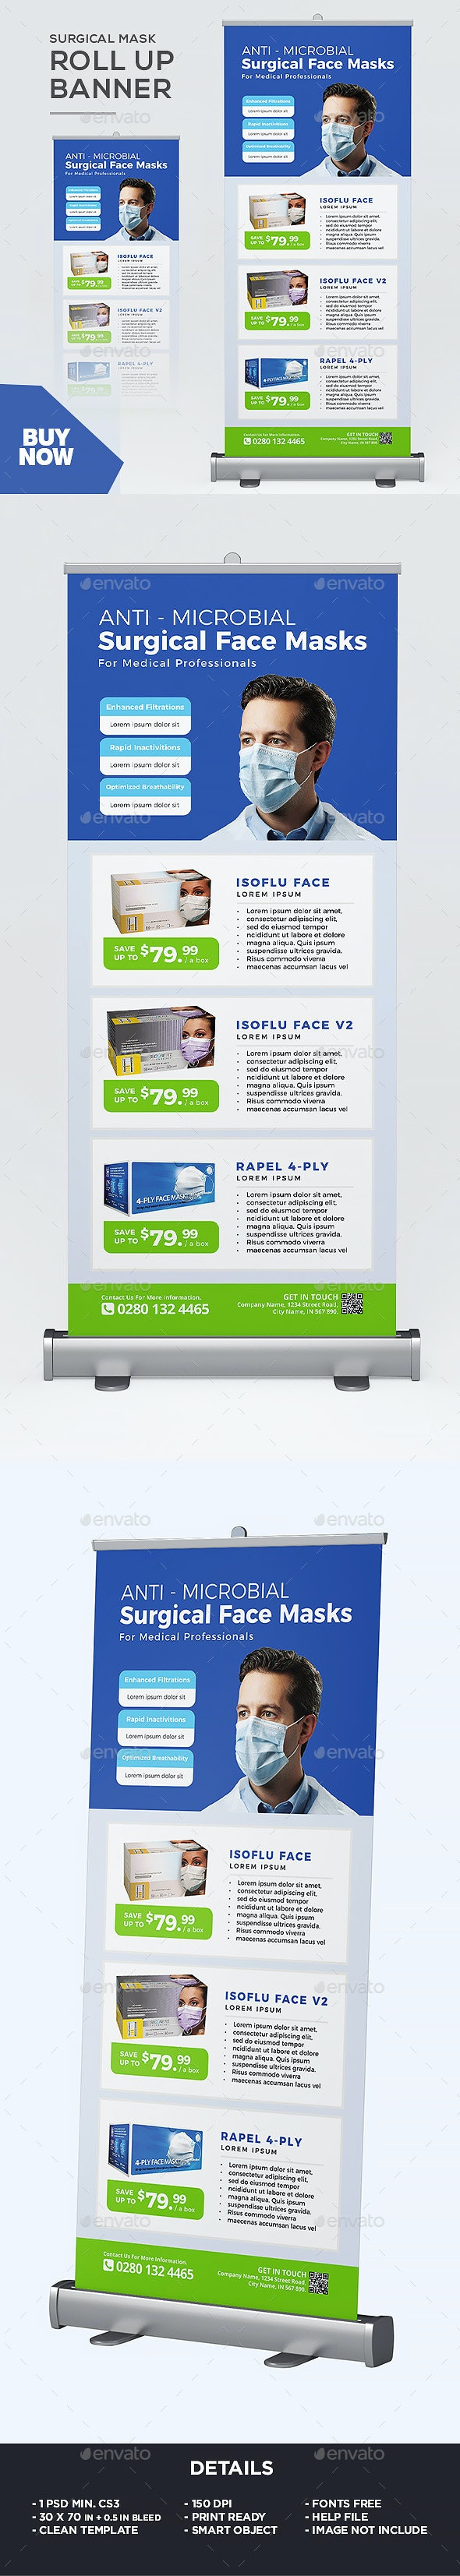 Surgical Mask Roll Up Banner - Signage Print Templates